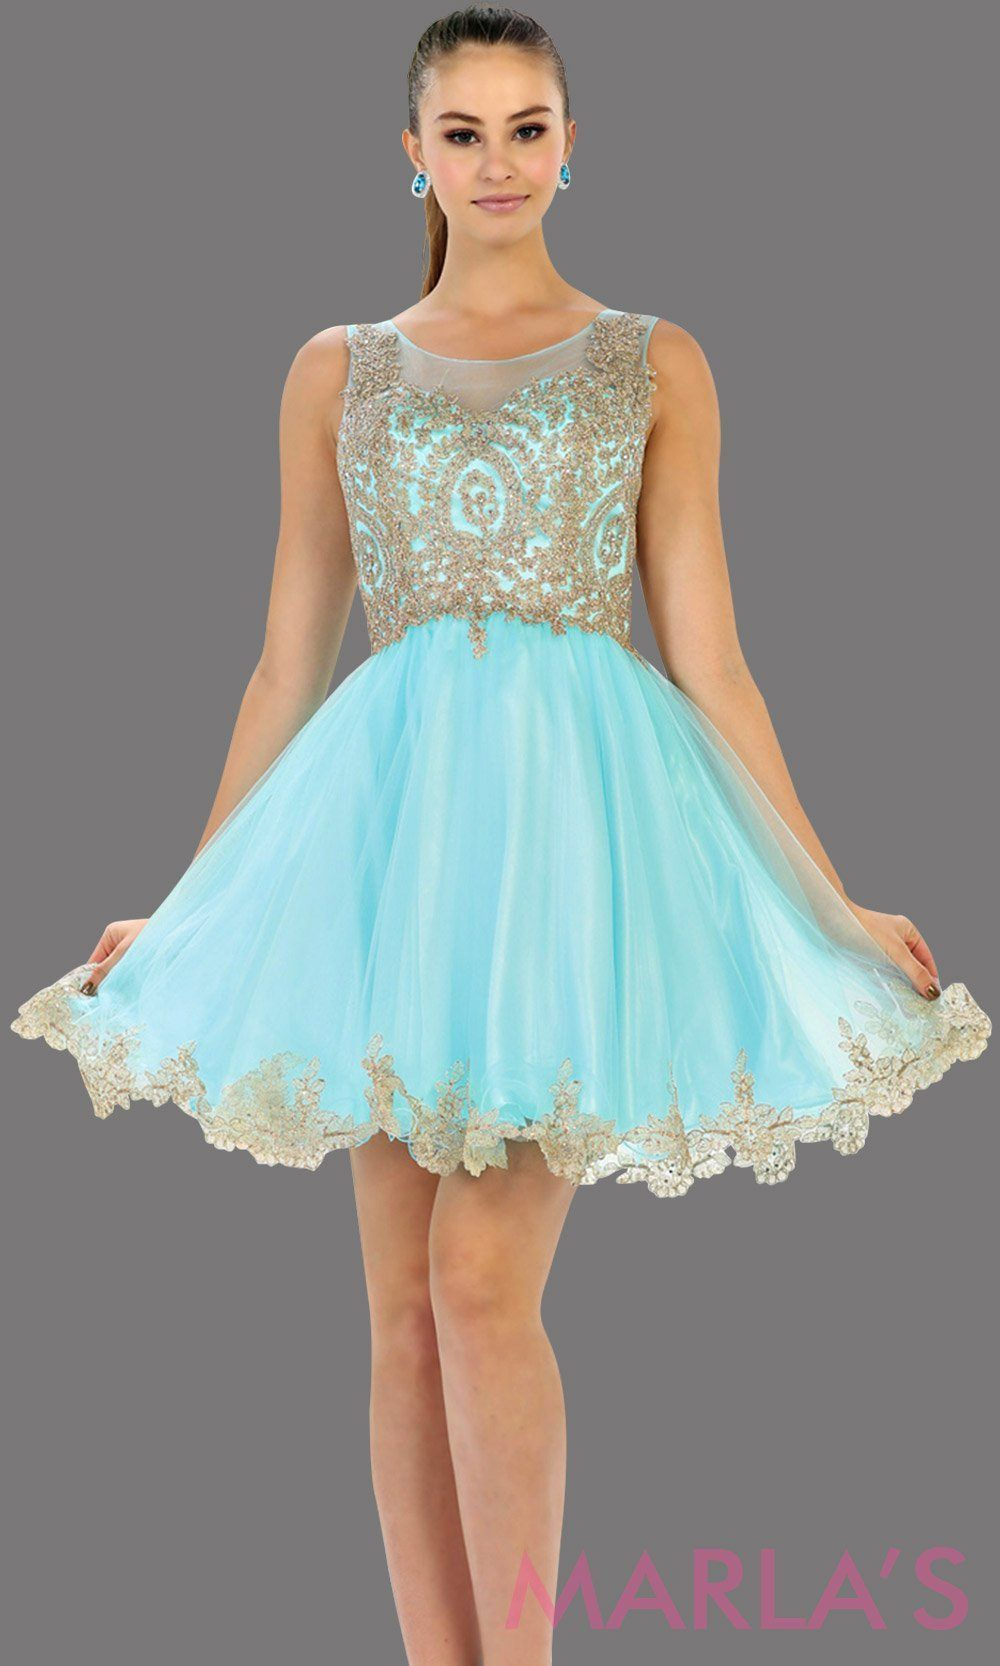 5030bf12f7386 Short aqua high neck grade 8 grad puffy dress with gold lace. This light  blue grade 8 graduation short dress and pretty. Can be worn for quinceanera  damas, ...